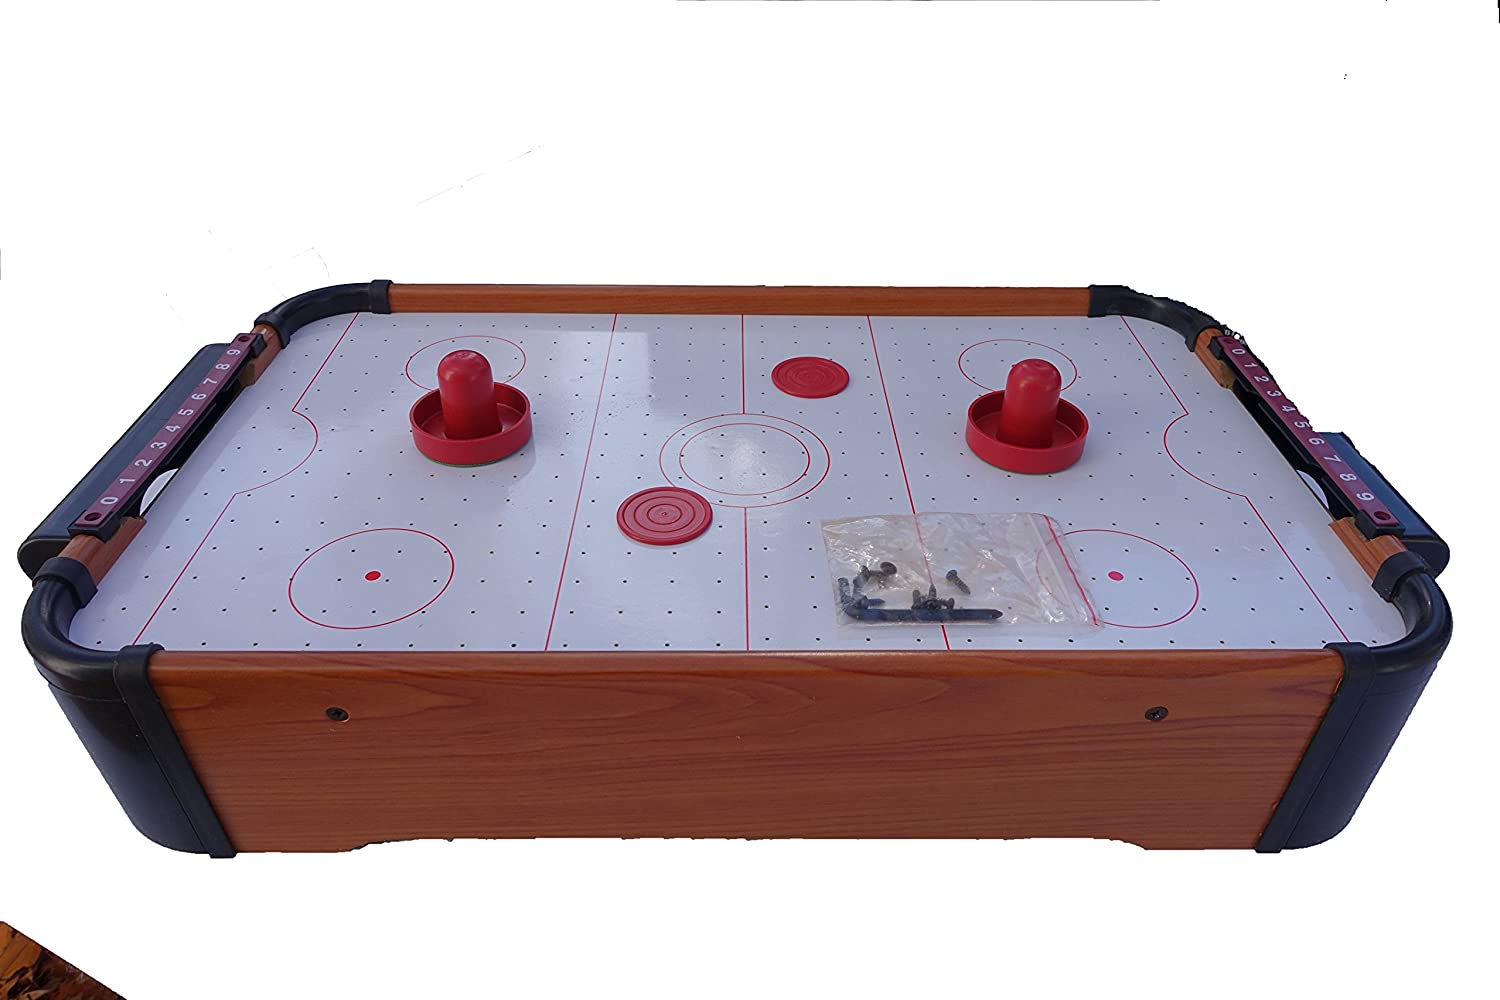 Rhode Island Novelty Air Hockey Table Top Game for Kids with 2 Puchers and 2 Pucks 20 Inches Long